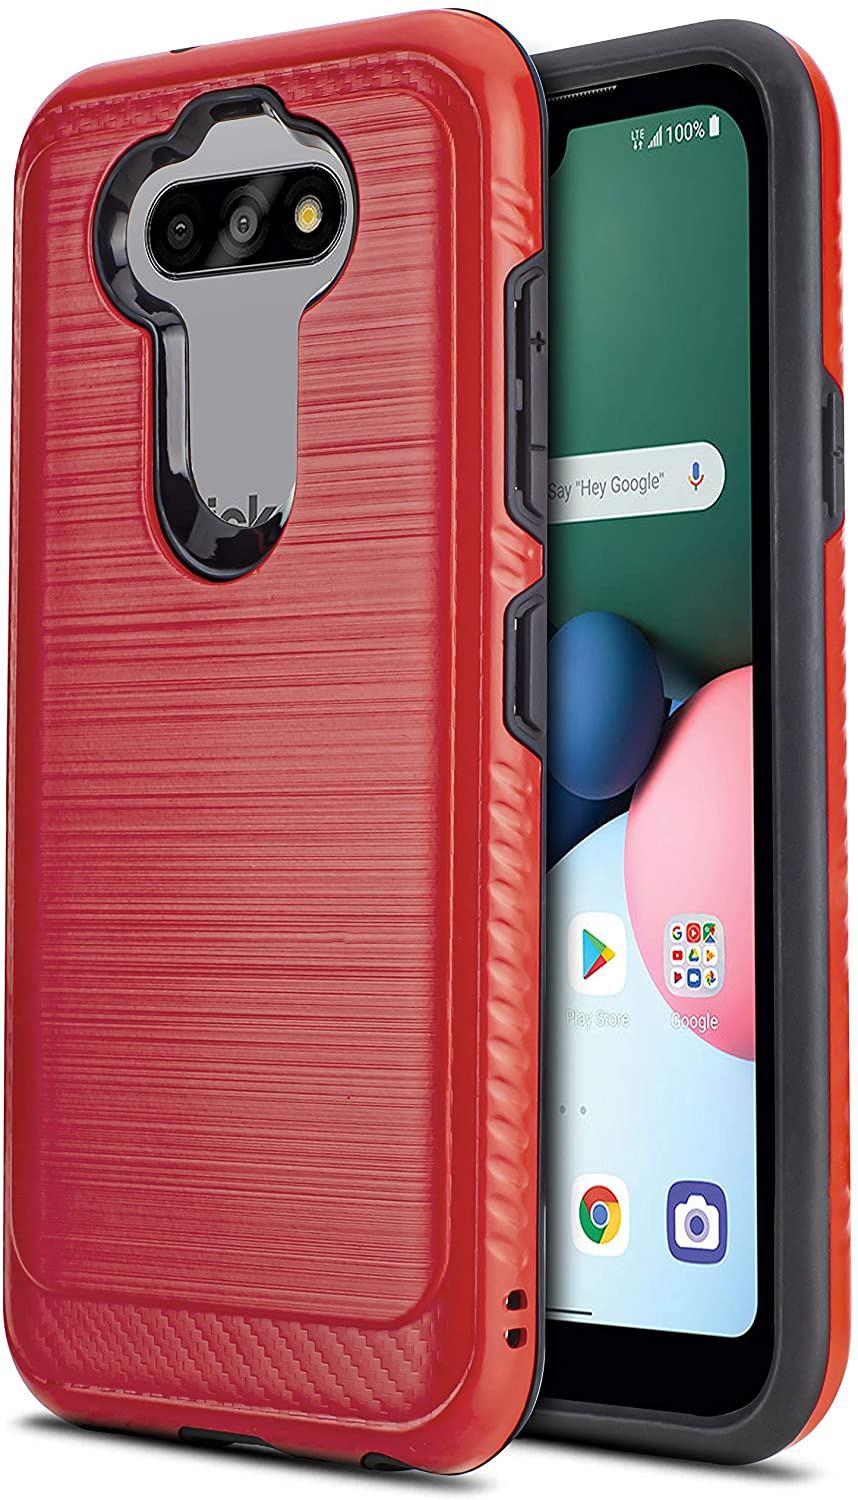 CasemartUSA Phone Case for [LG Fortune 3 (Cricket Wireless)], [Modern Series][Red] Shockproof Brushed Defender Protective Cover for LG Fortune 3 (Cricket Wireless)